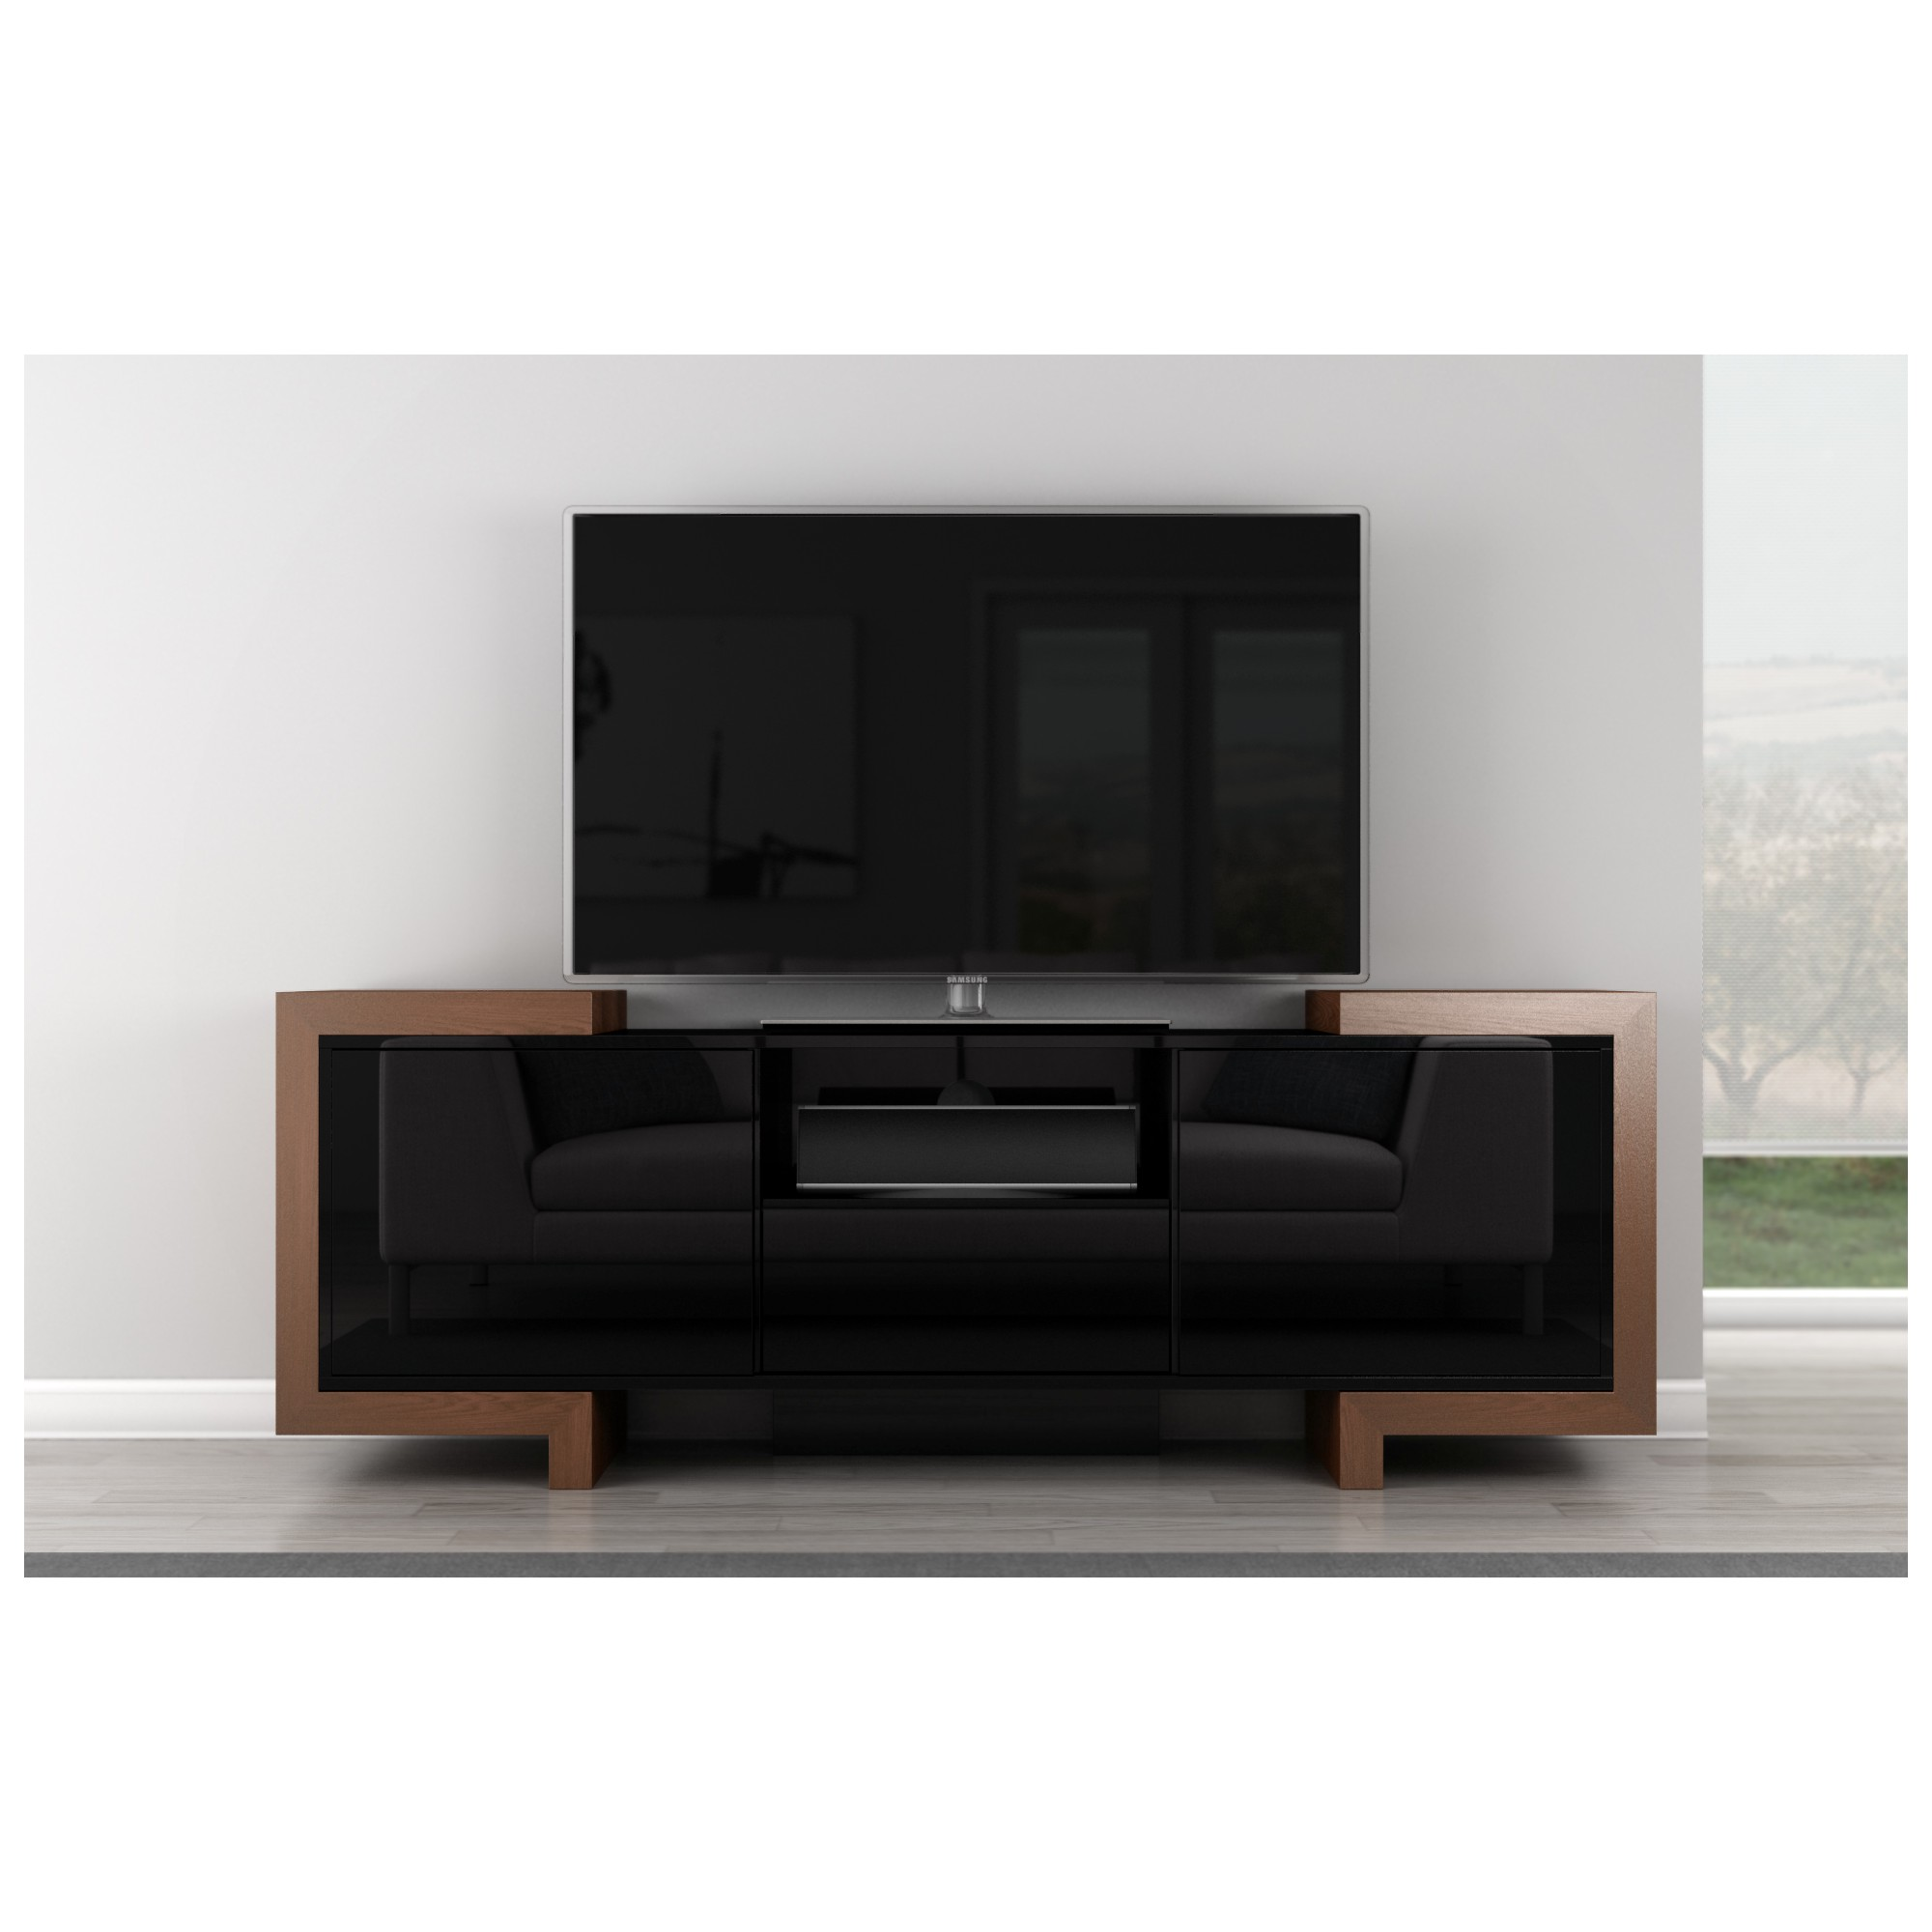 furnitech ftfa  tv stand contemporary media cabinet in high  - furnitech  tv stand contemporary media cabinet in high gloss blacklacquer  oak